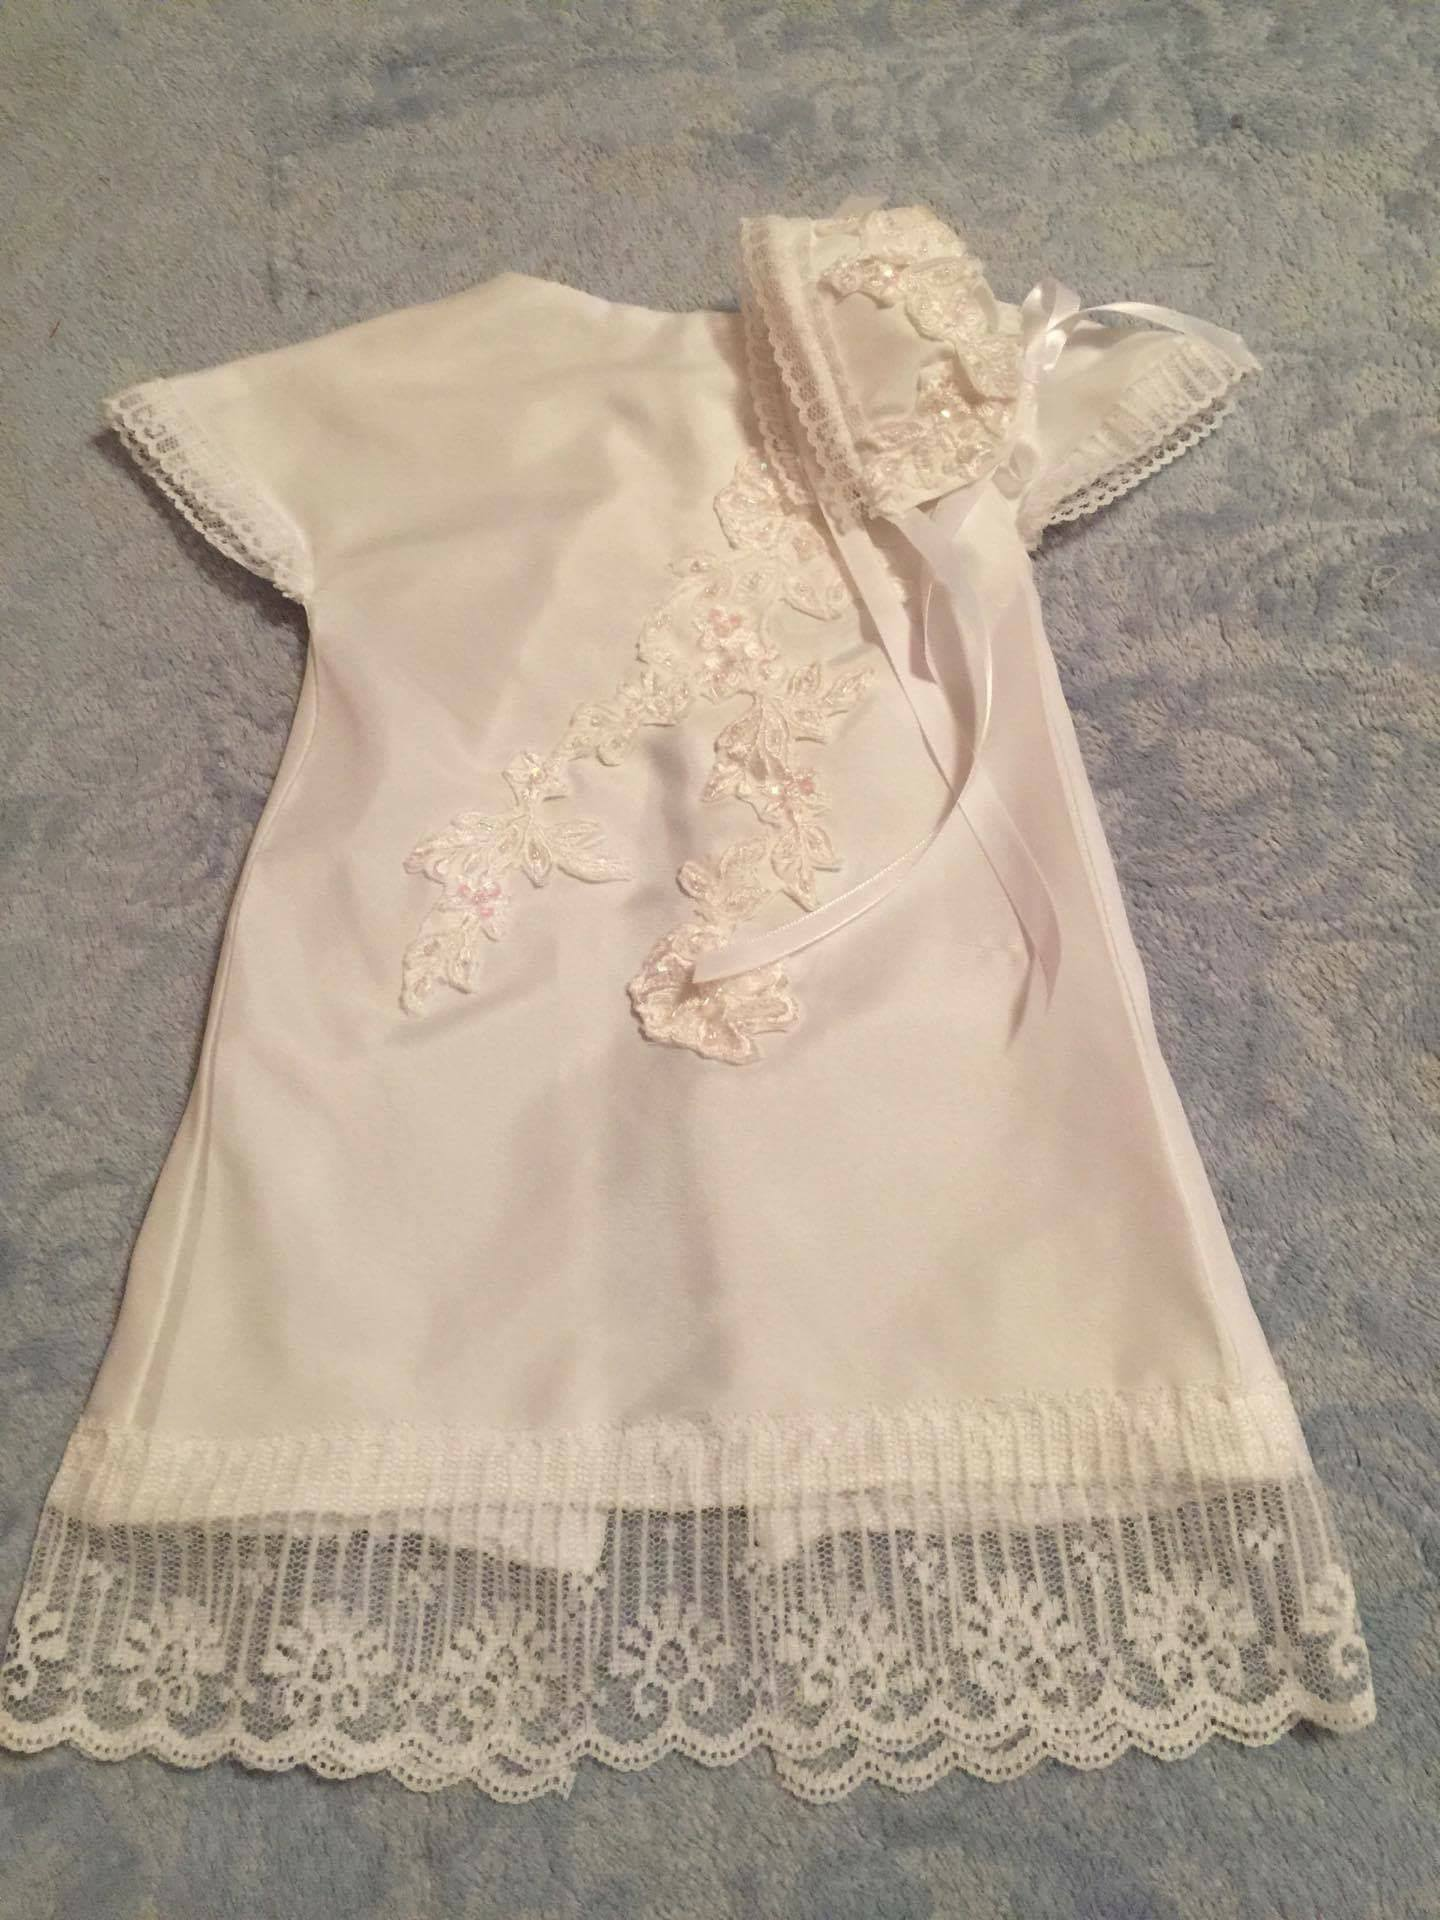 WLJ Angel Gowns - Providing Angel Gowns and Angel Wraps